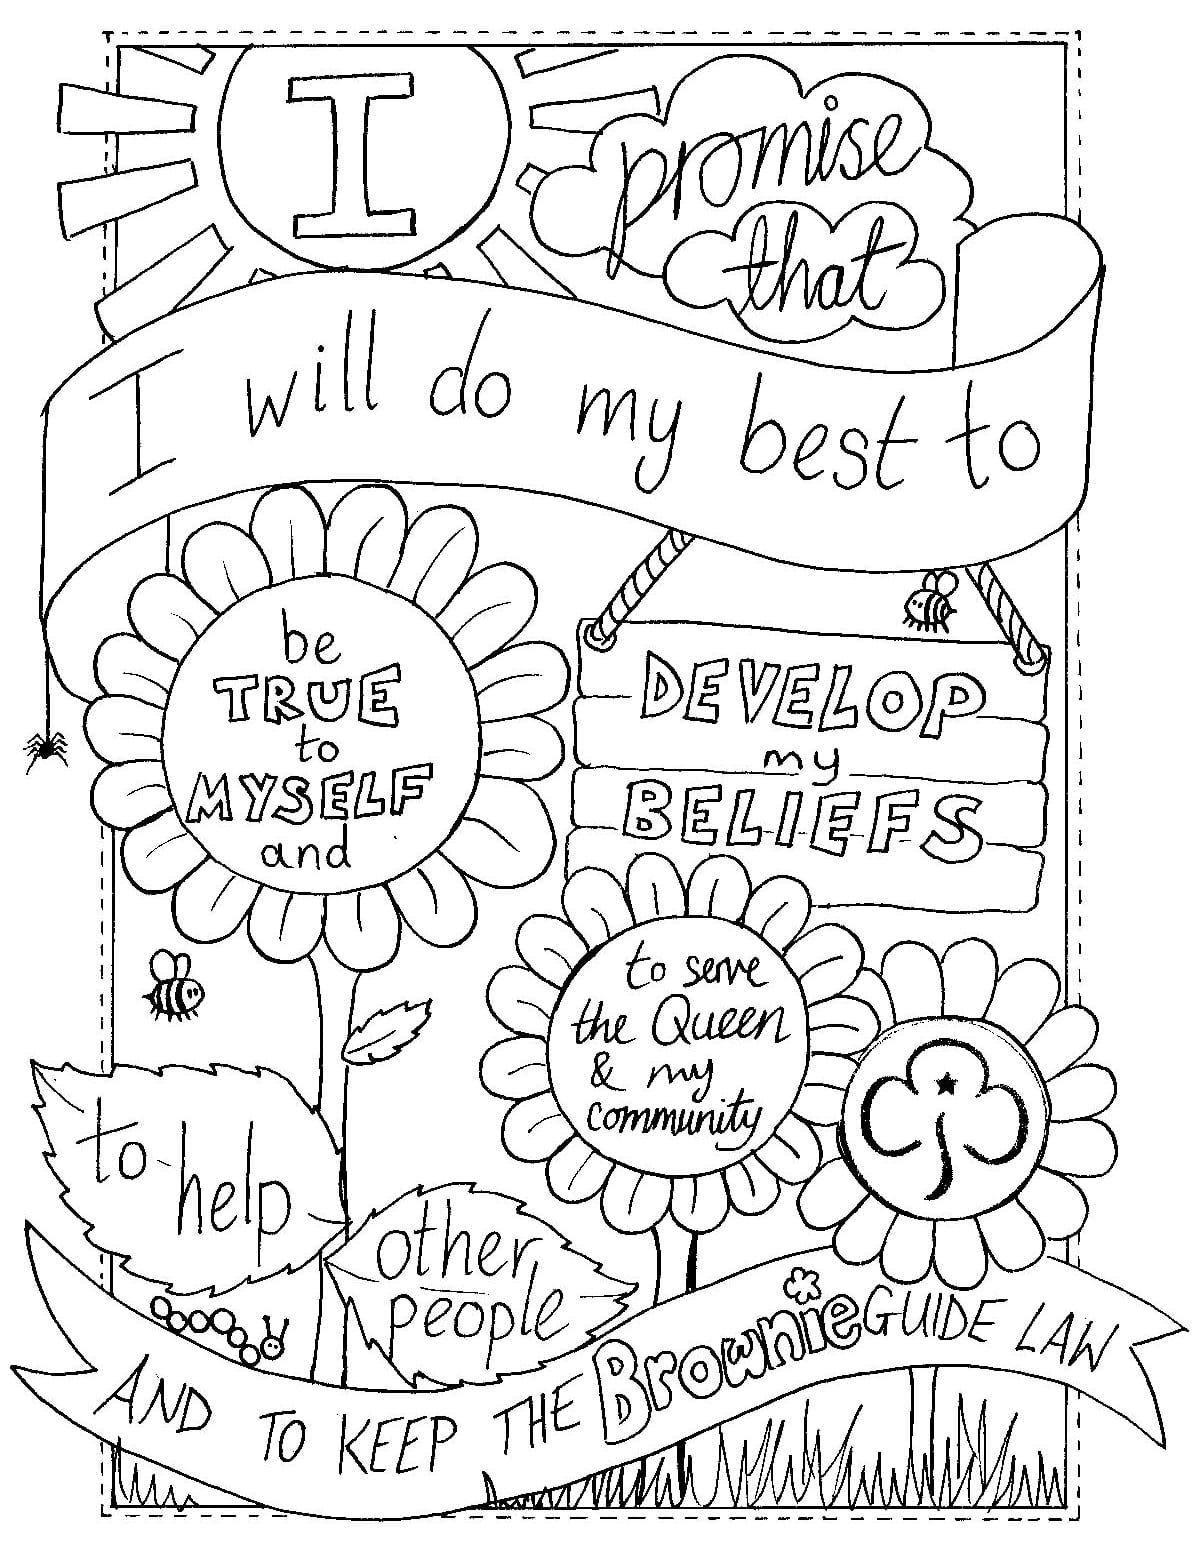 Girl Scout Law Coloring Pages Newyork Rp Com And Faba Me